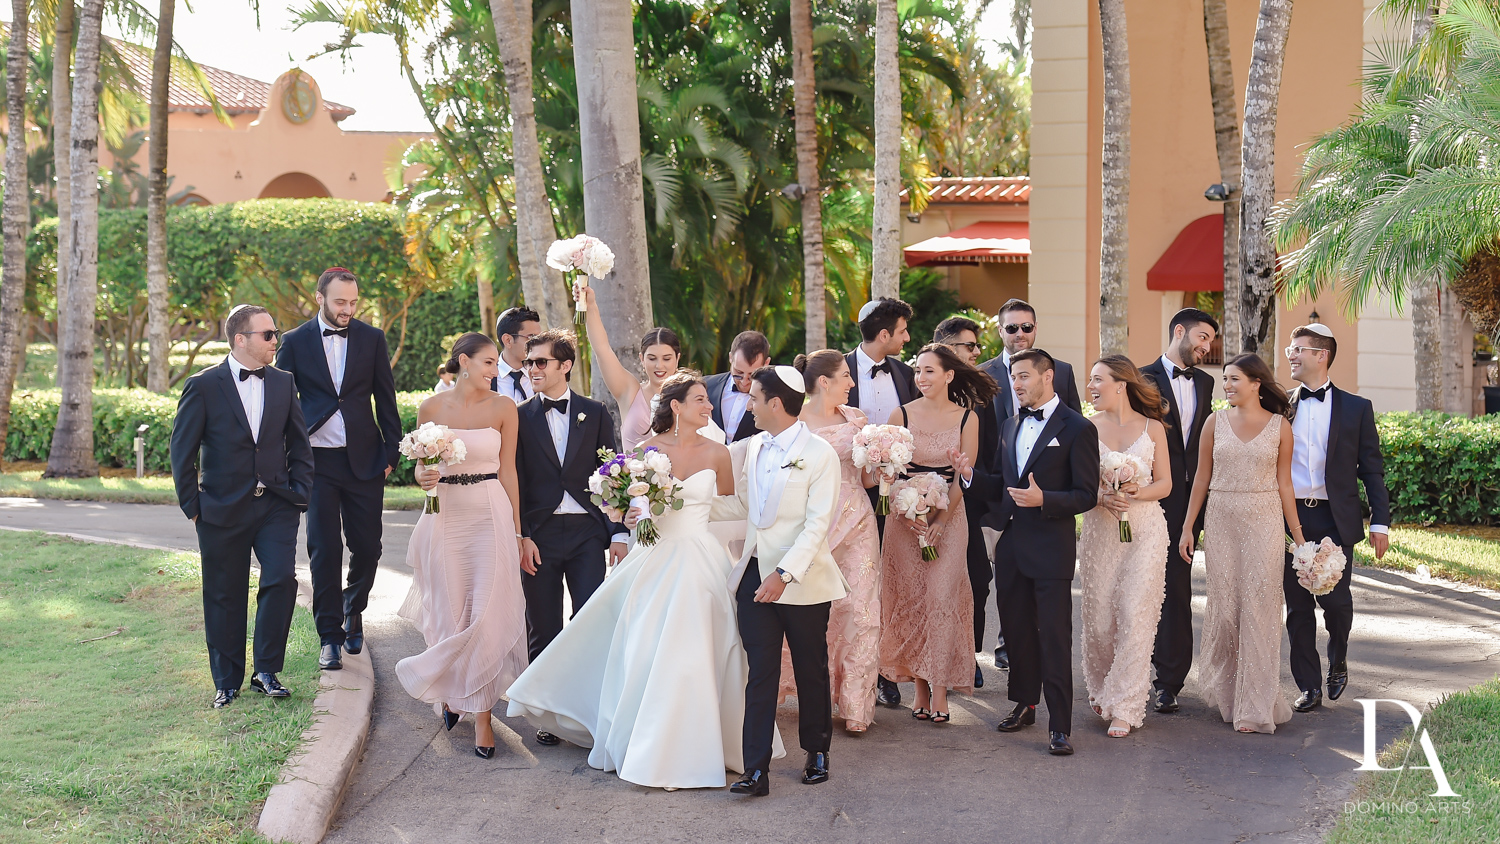 bridal party at Modern Luxury Jewish Wedding Photography at Biltmore Miami Coral Gables